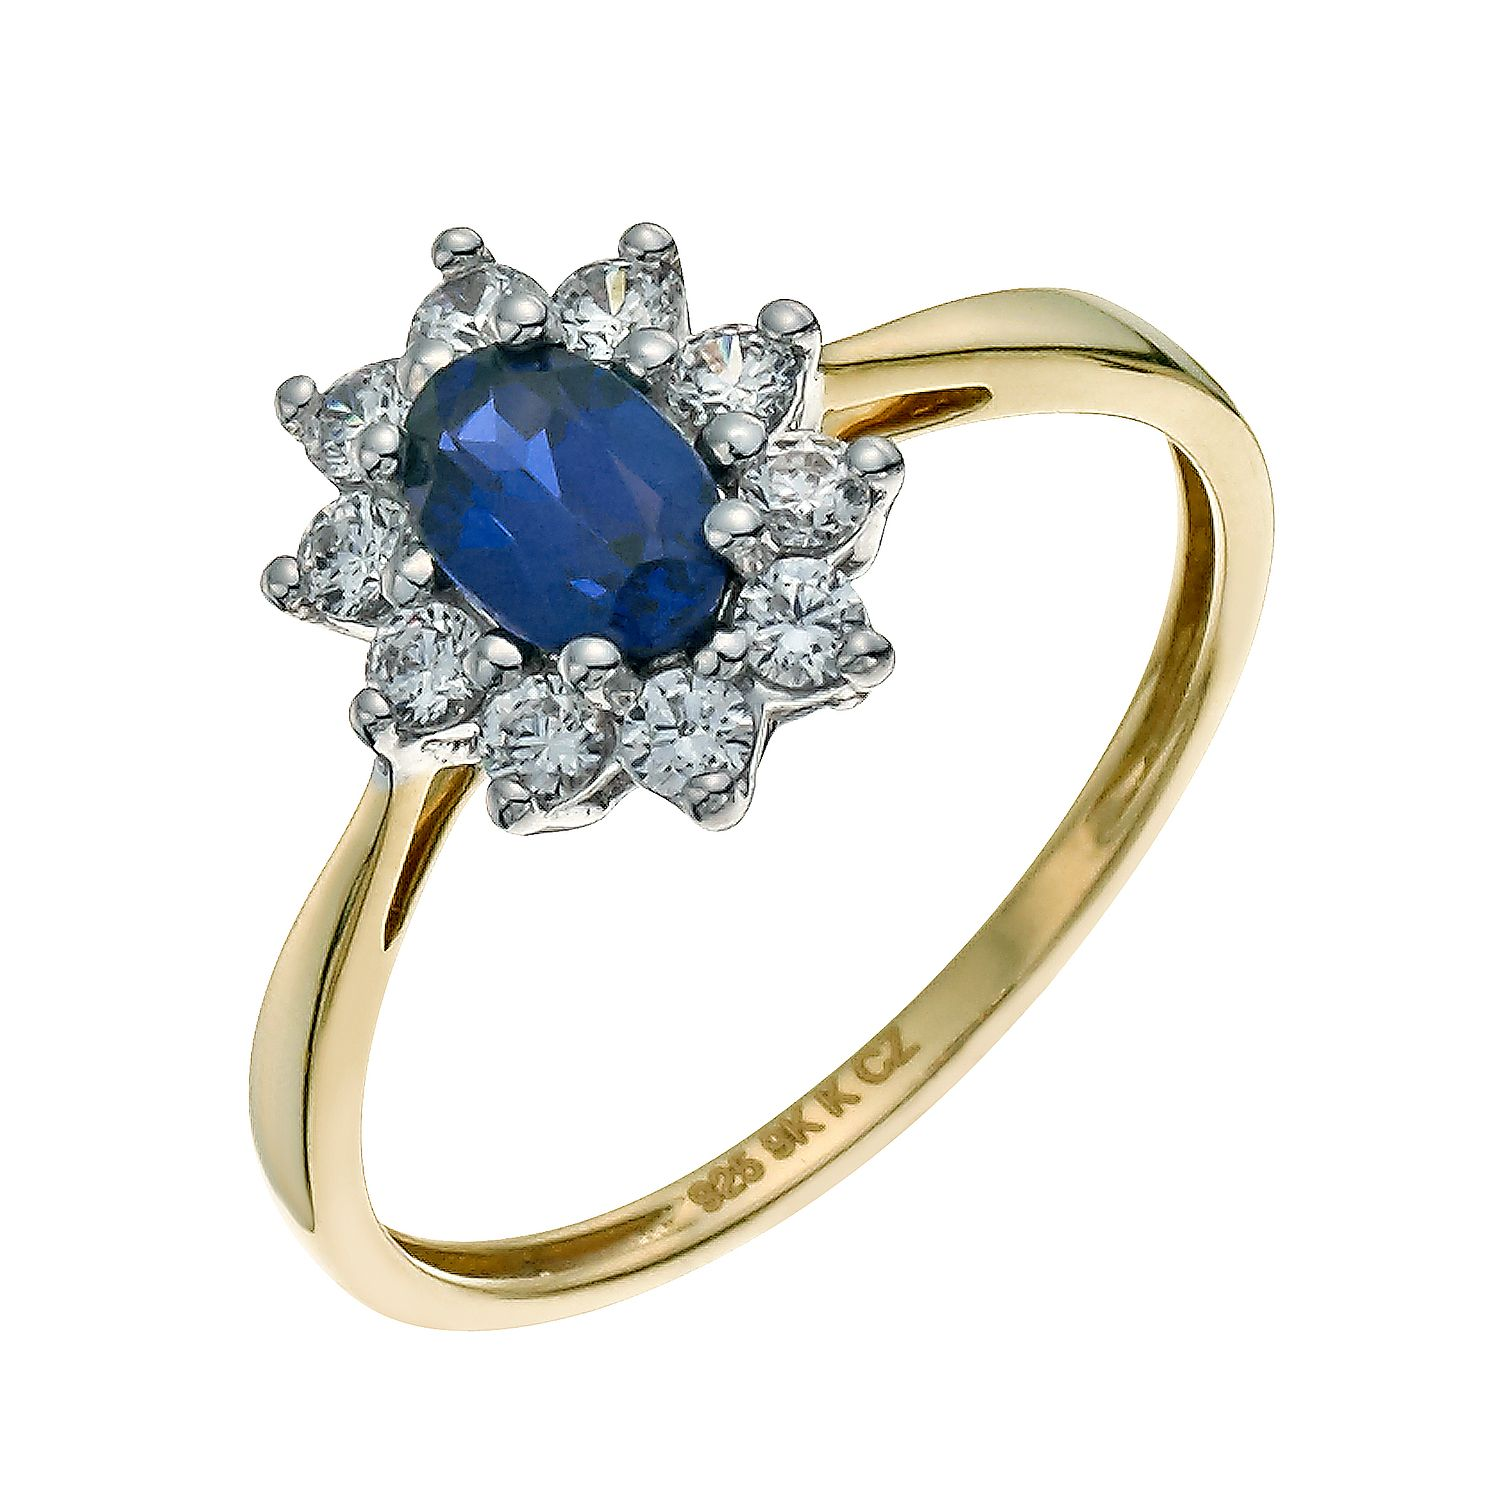 rings collections ring kamoon c gold products tuten elton fullsizeoutput edwardian diamond three ct sapphire